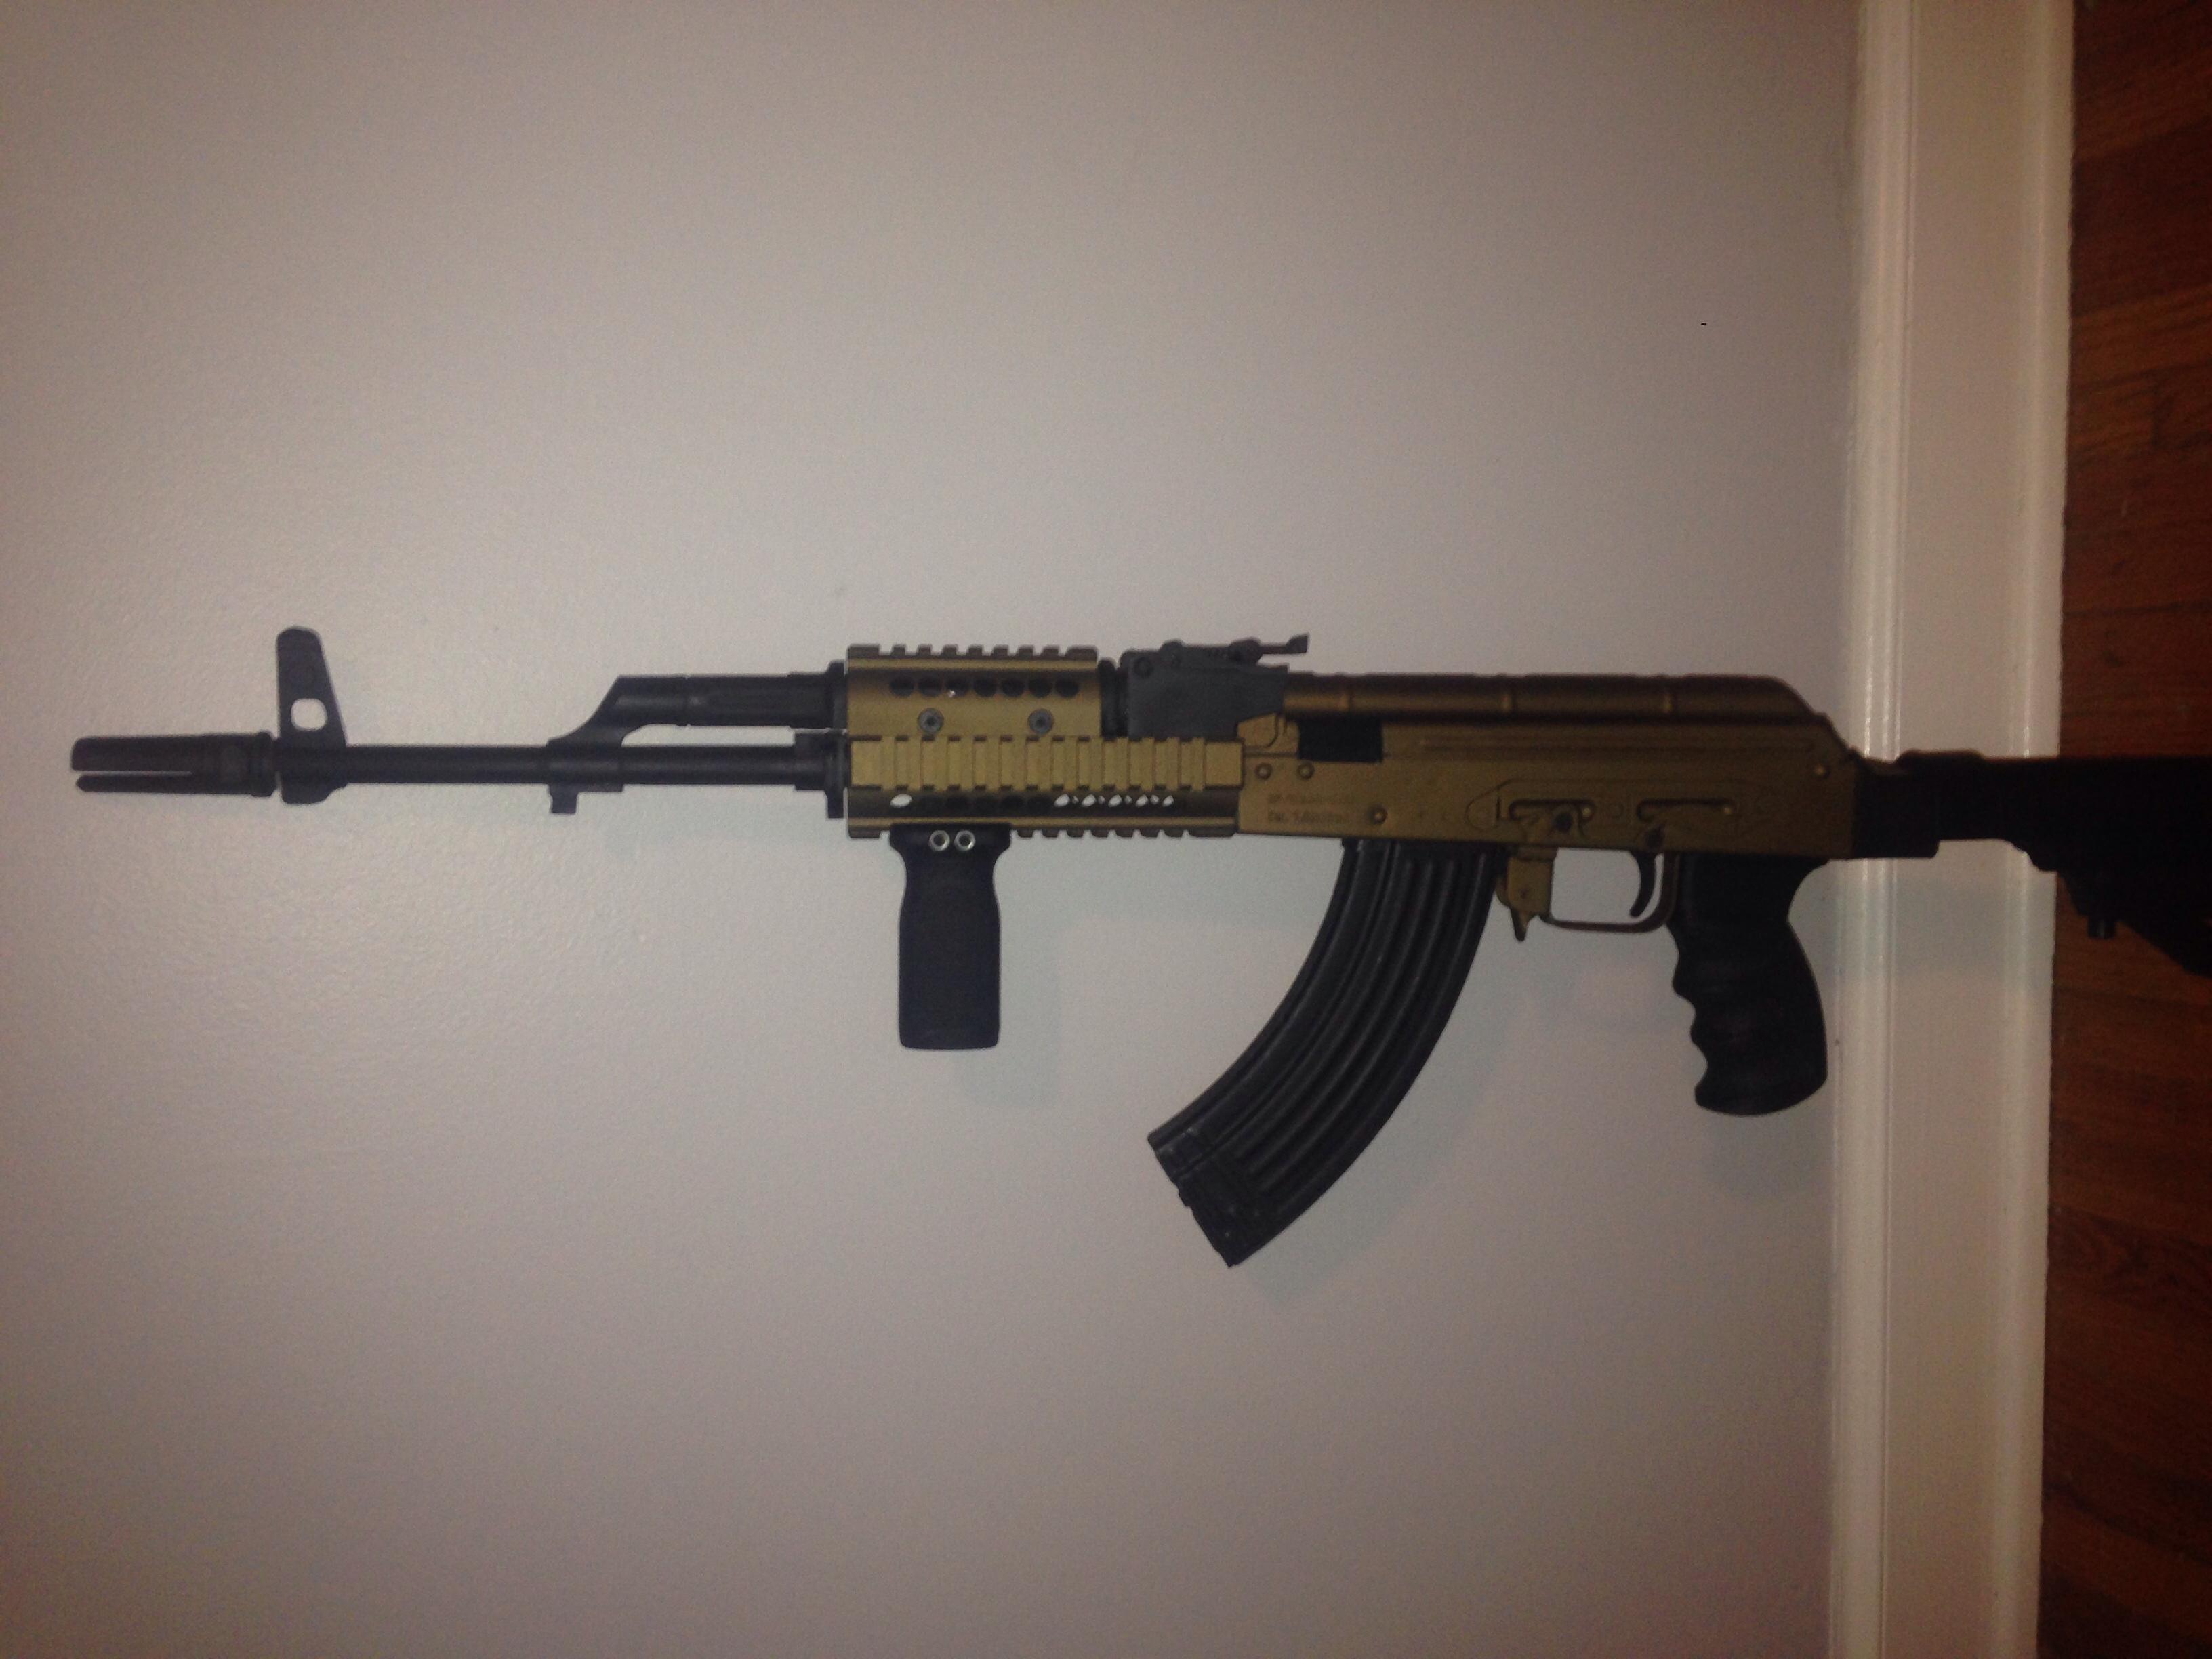 Wasr-10 Gp-Wasr 10-63, Cerekote gold, Sure fire flash hider, Jard trigger, Phoenix buffer tube stock, ATI pistol grip